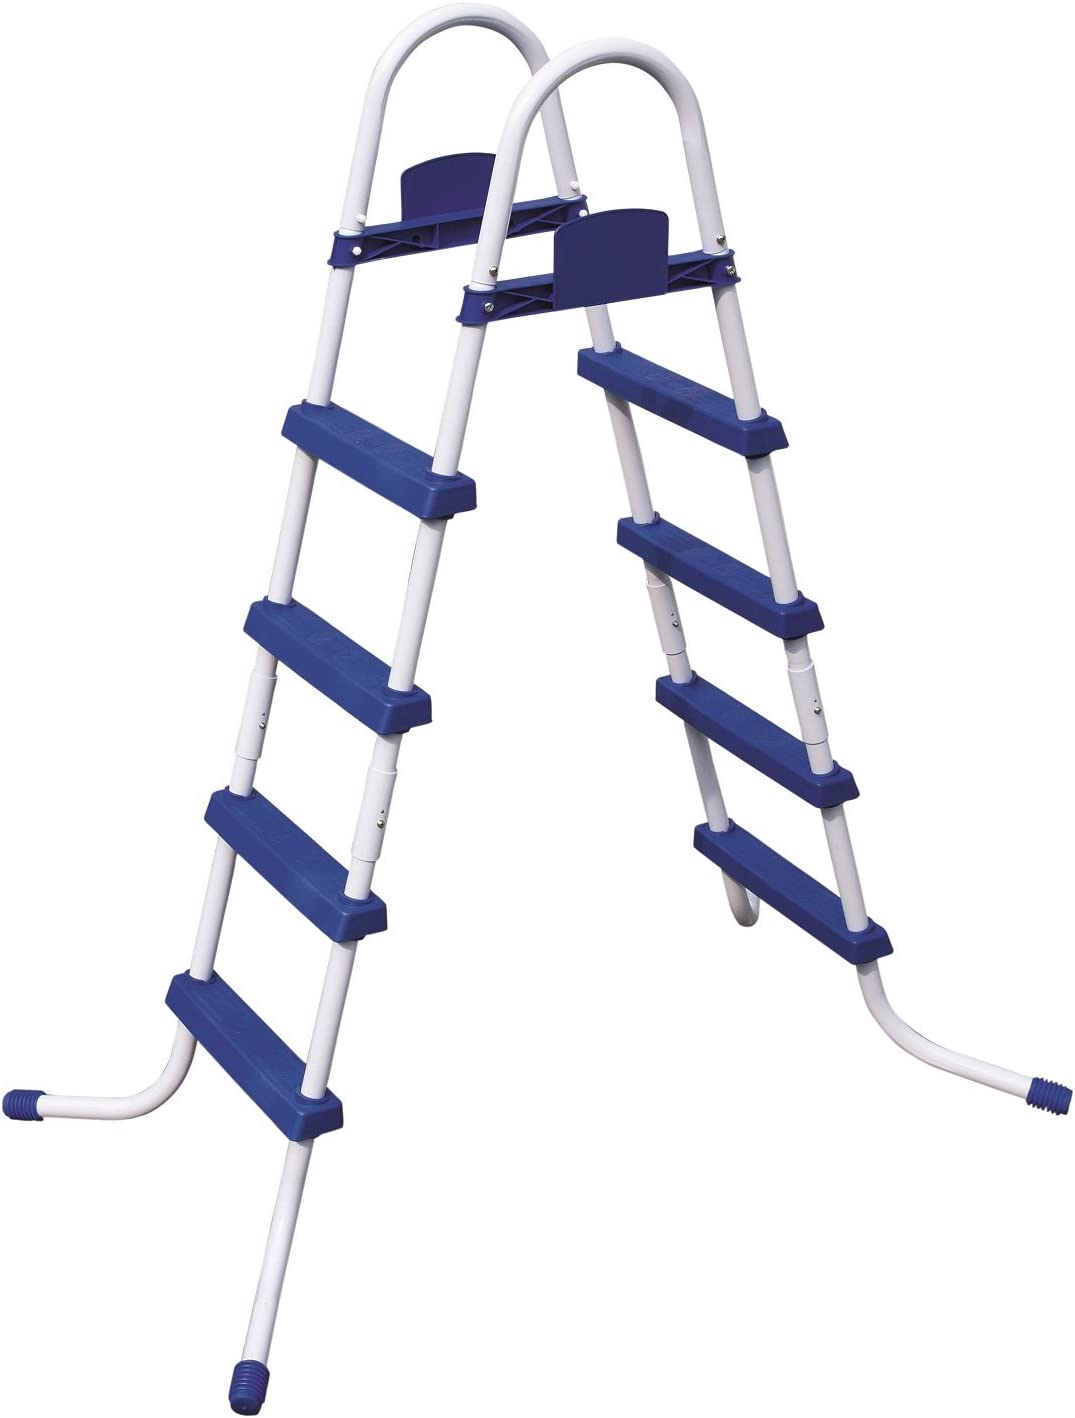 "Bestway 58336E 58336 Pool Ladder, 48"", Blue"